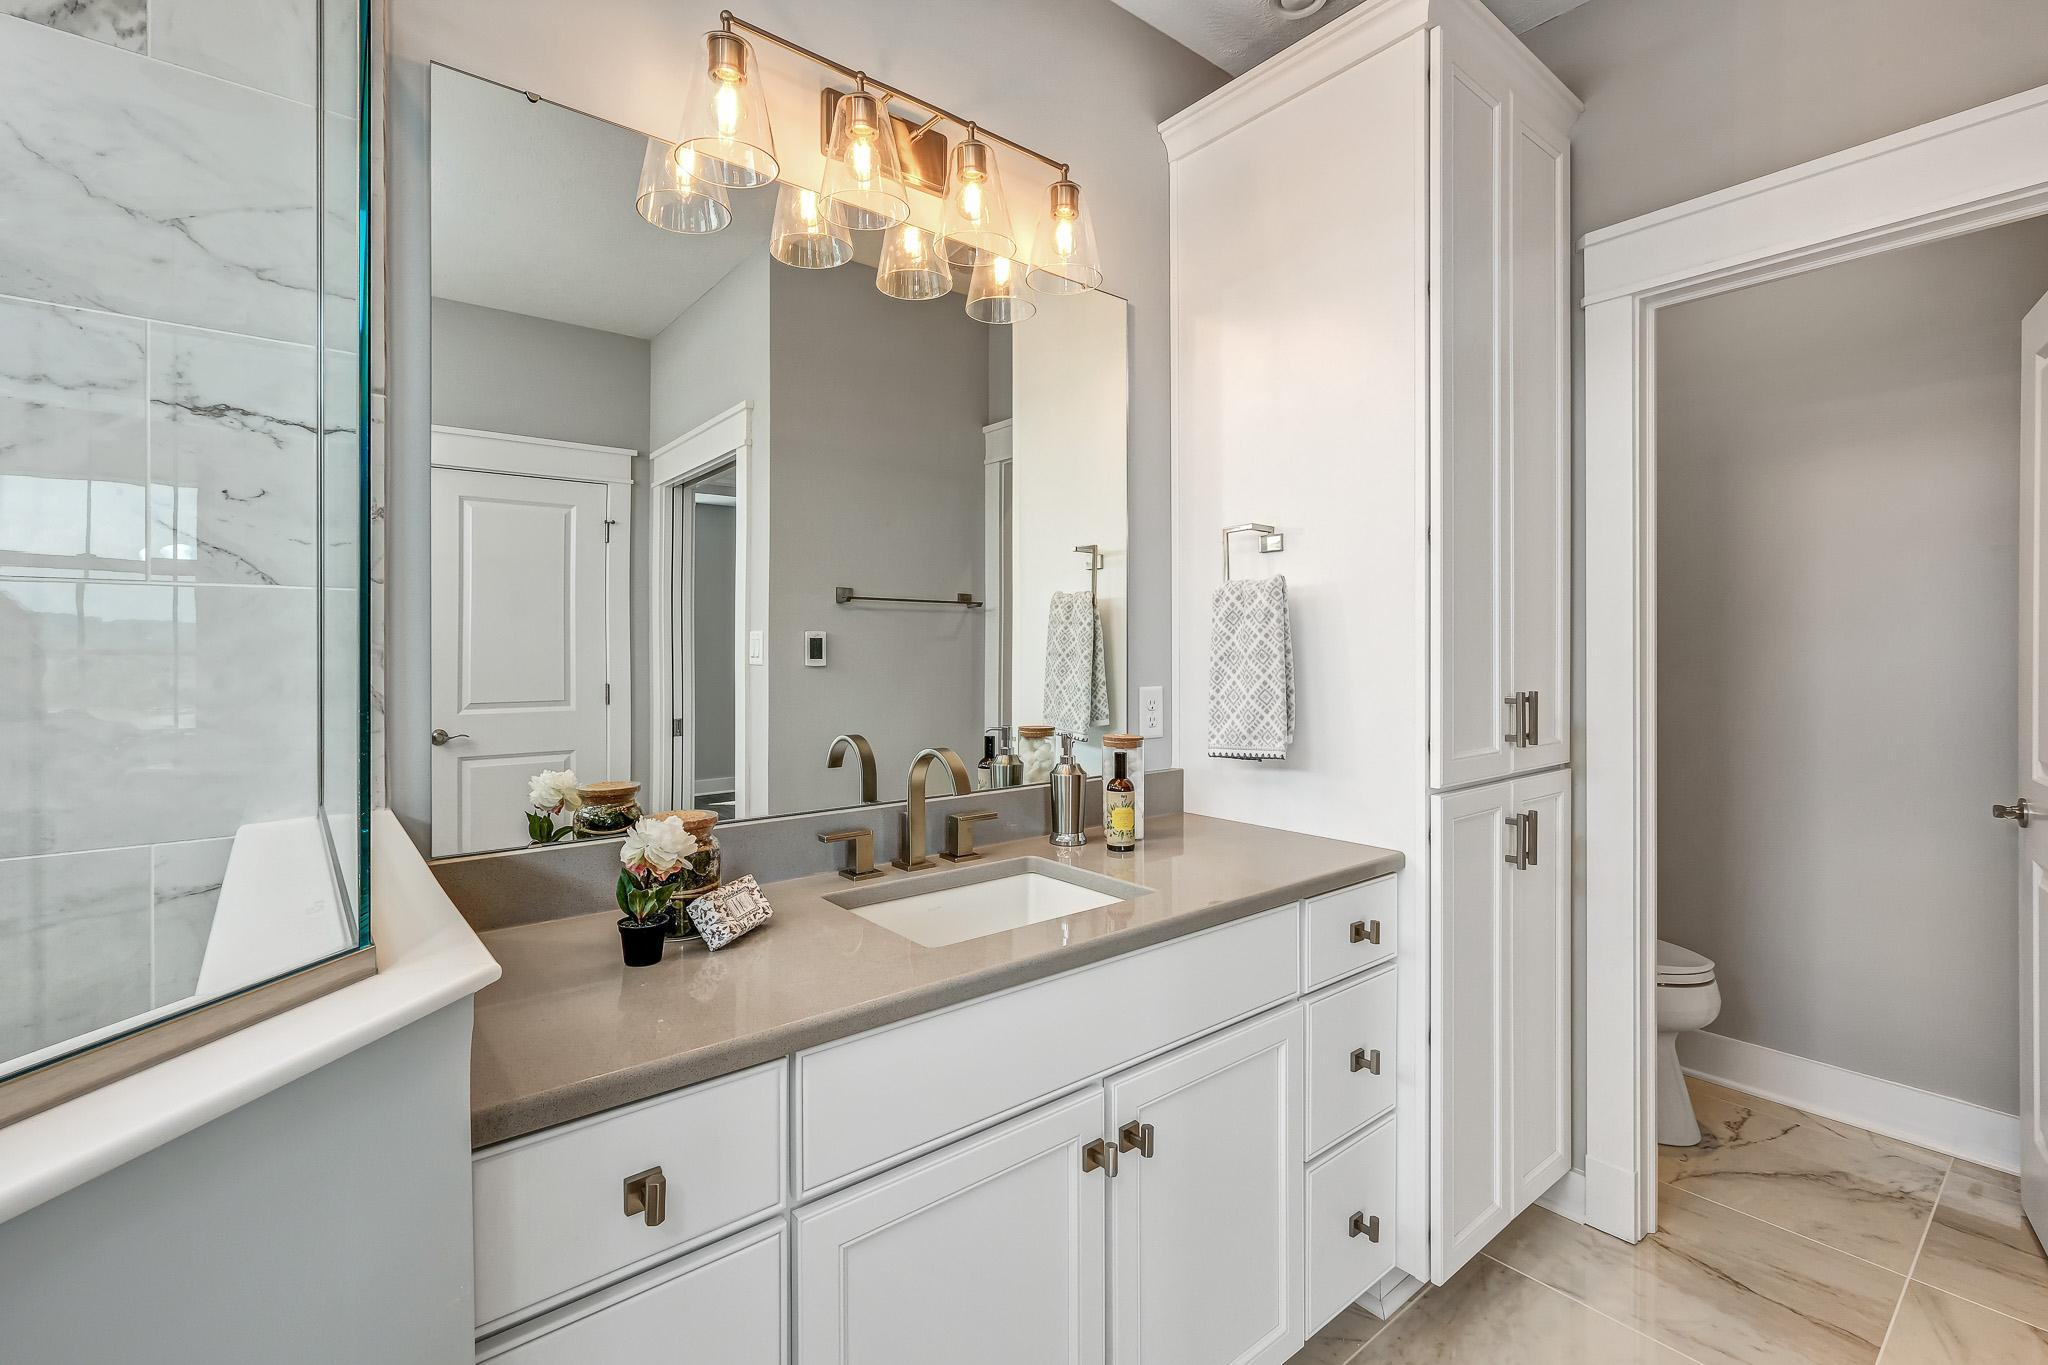 Bathroom featured in the Brooklyn By Infinity Custom Homes in Pittsburgh, PA